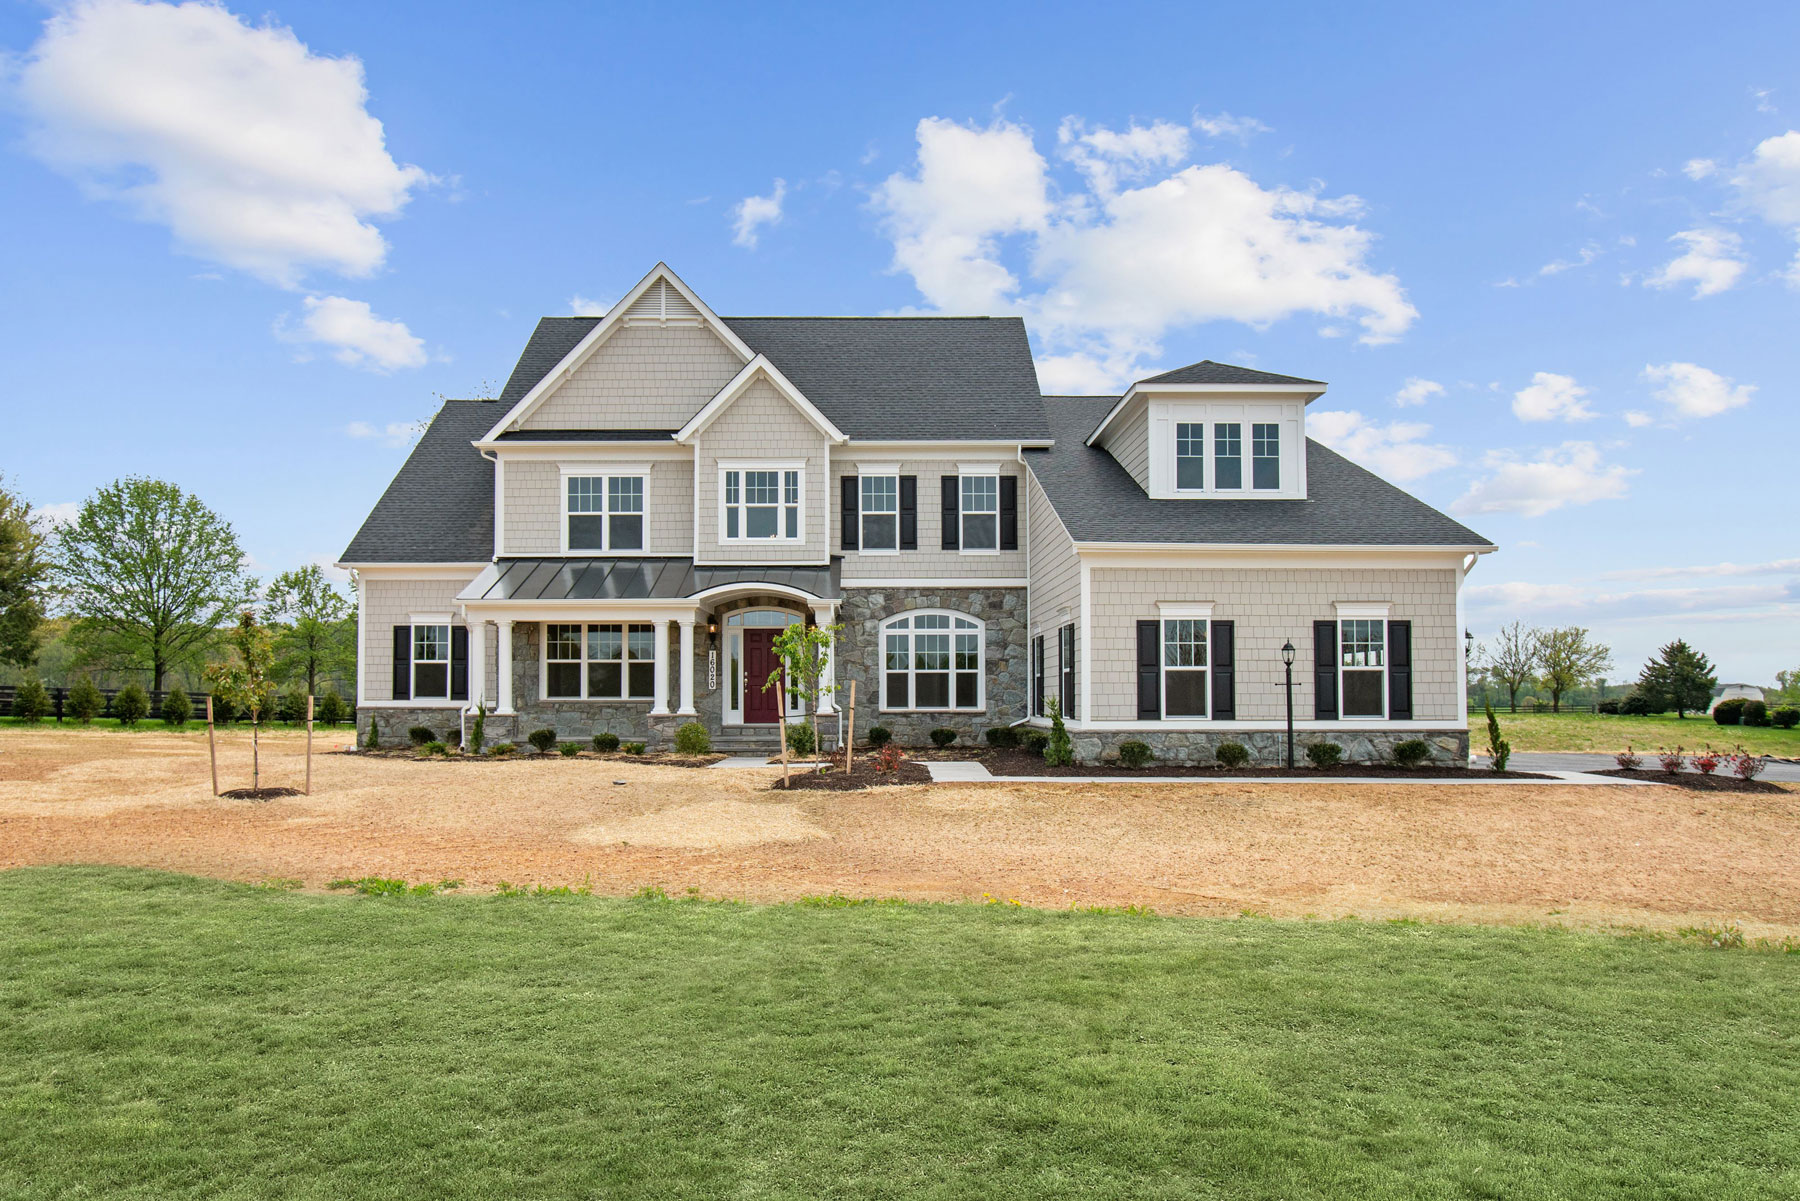 Exterior, Finished Custom Home, Edgemoor, Clarksburg, Craftmark Homes